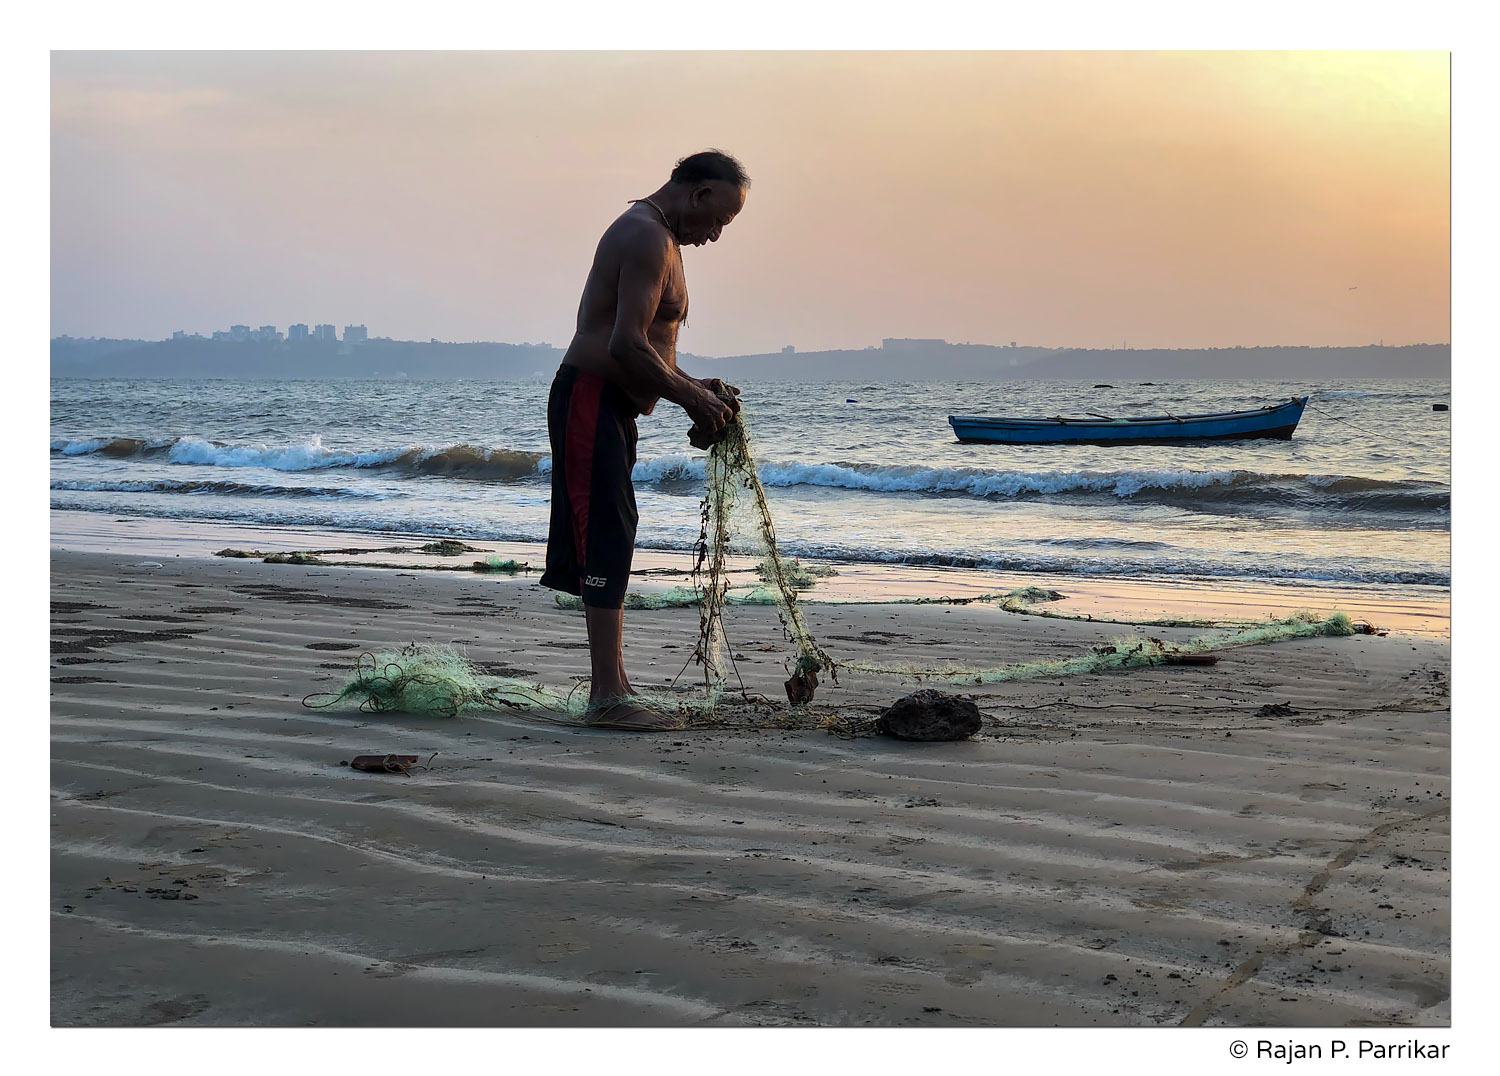 Untangling the net in Siridona, Goa